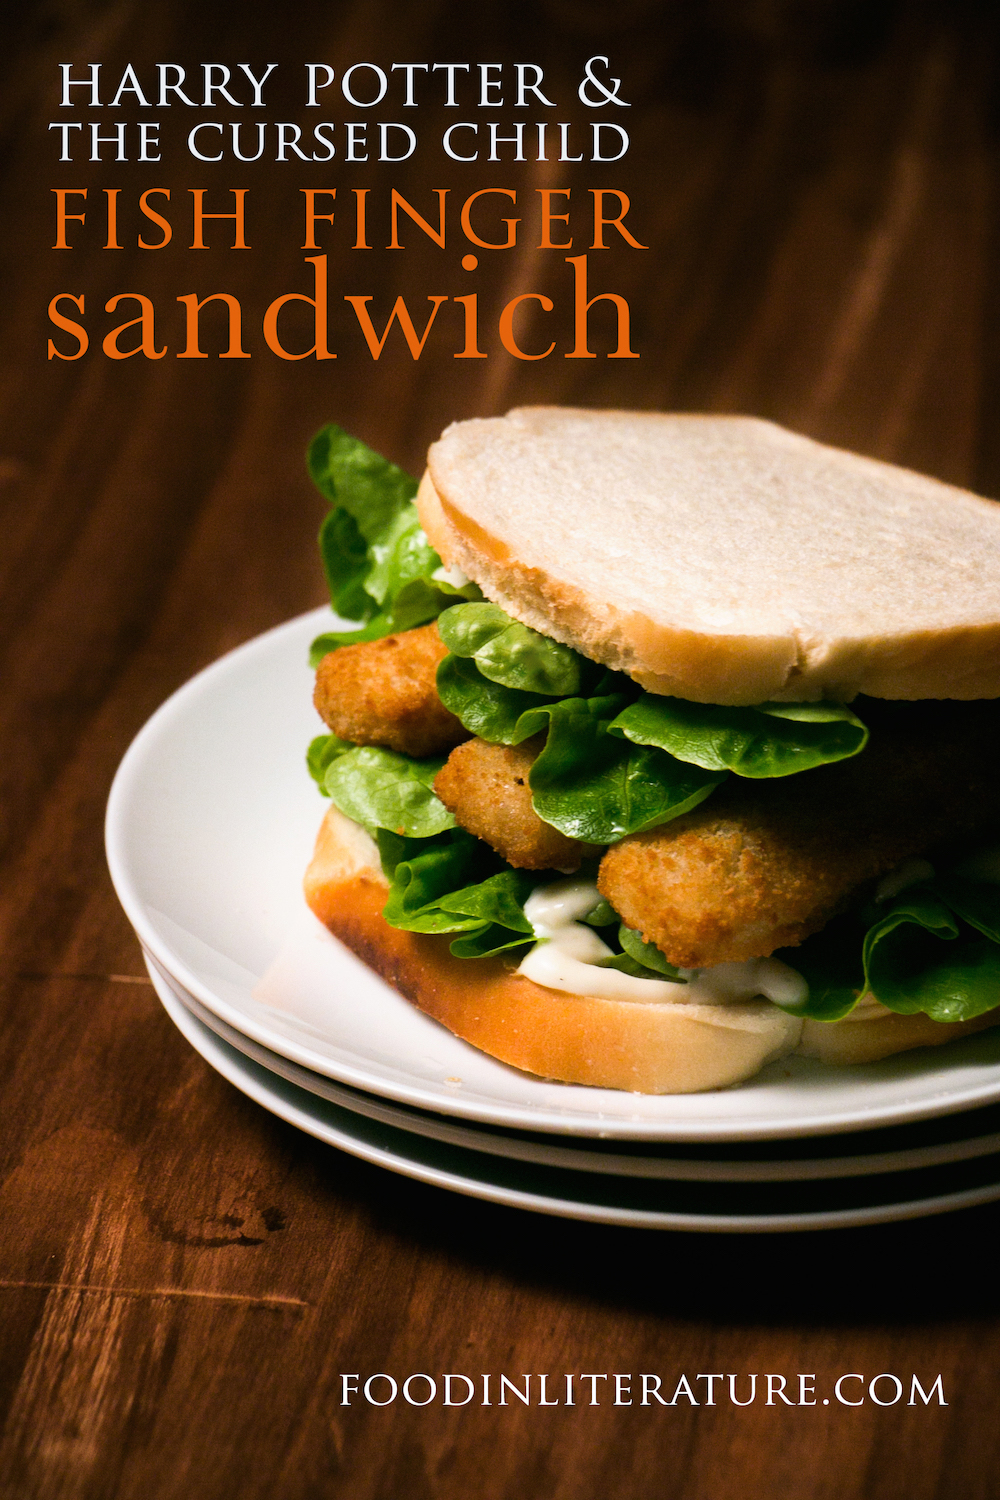 harry potter cursed child fish-finger-sandwich recipe